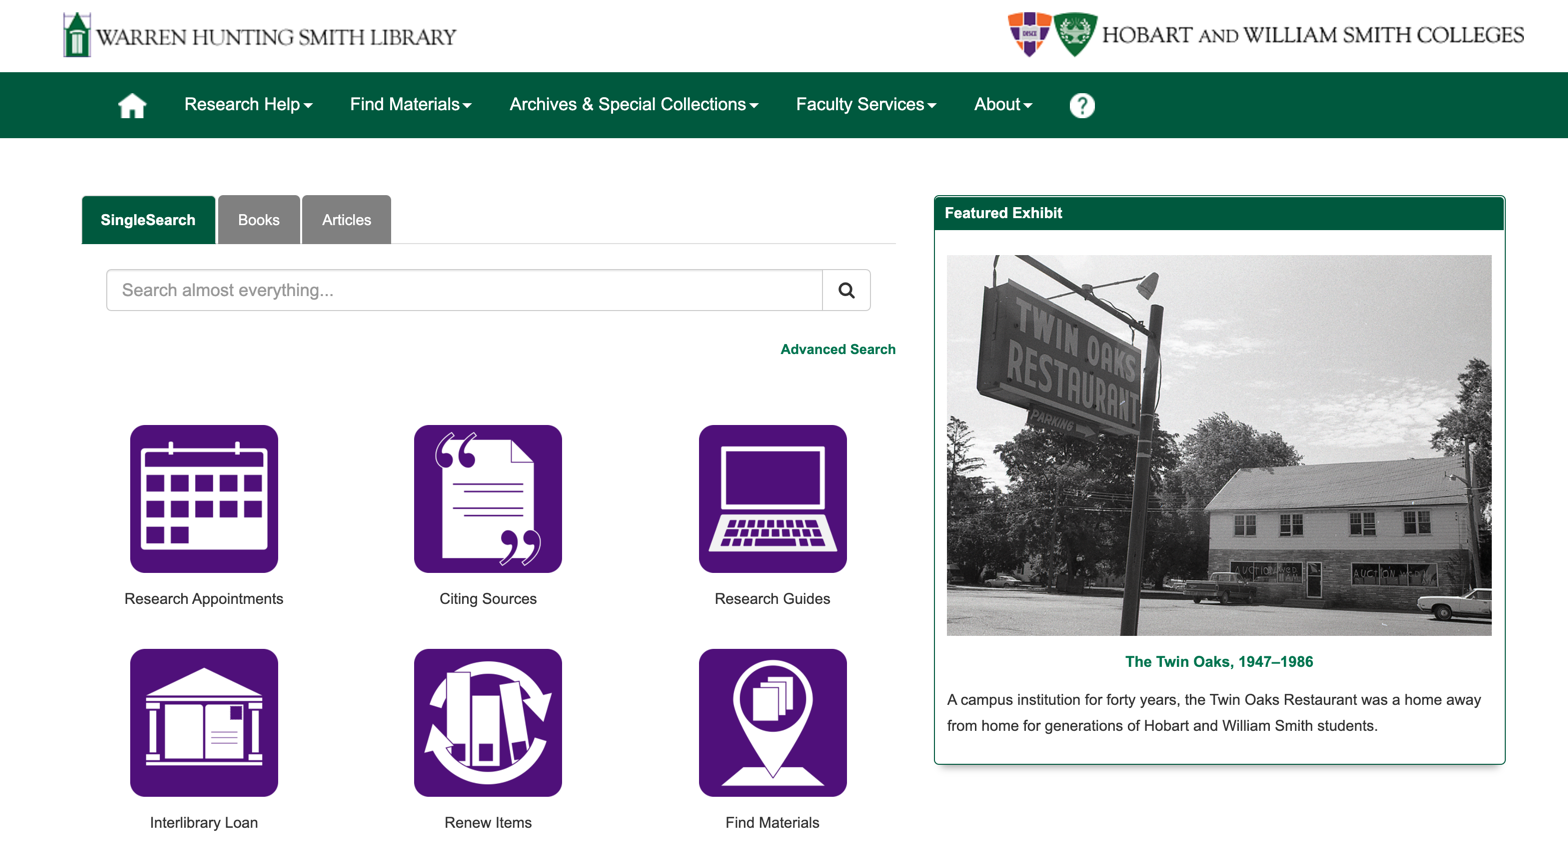 Screenshot Hobart and William Smith Colleges LibGuides Screenshot